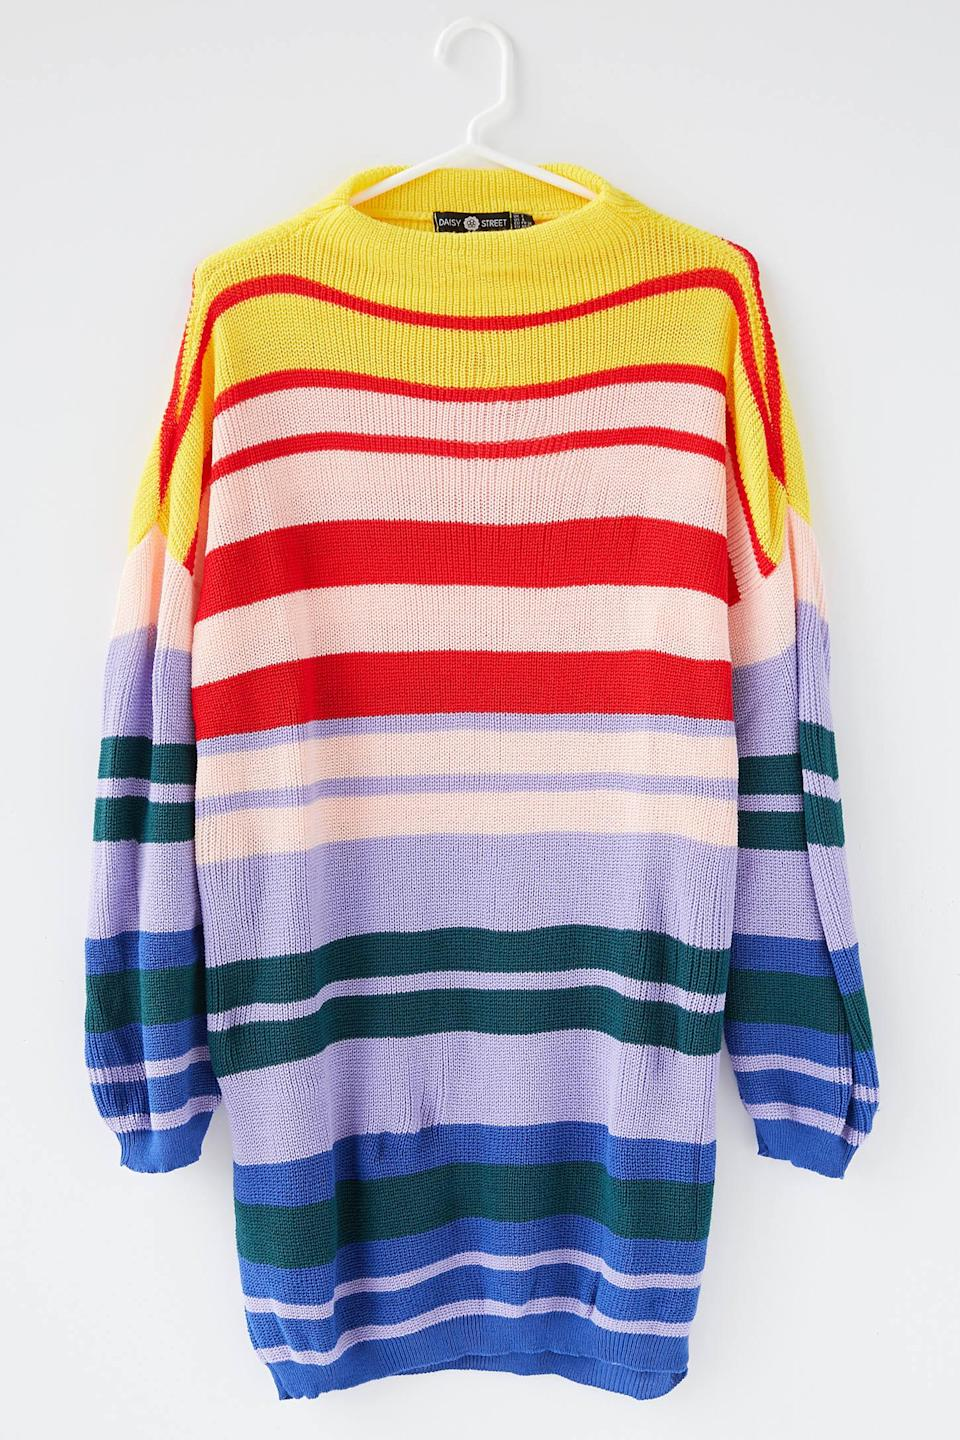 """<h2>Urban Outfitters Daisy Street Striped Knit Sweater Dress</h2><br>Whether it's hype-driven loungewear collabs or minimal slipdresses, Urban Outfitters boasts a crop of comfy-cool staples that keeps us browsing its online pages well even though we've aged out of its target demographic. Among the strappy 90s-inspired micro-minis that populate the ranks of this youthful retailer lurks this cheerful, 100% cotton sweater dress. We can see this frock providing a much-needed endorphin boost when the days get really short and gray.<br><br><strong>Daisy Street</strong> Daisy Street Striped Knit Sweater DressStriped Knit Swe, $, available at <a href=""""https://go.skimresources.com/?id=30283X879131&url=https%3A%2F%2Fwww.urbanoutfitters.com%2Fshop%2Fdaisy-street-striped-knit-sweater-dress%3Fcategory%3Dcasual-dresses%26color%3D095%26type%3DREGULAR%26quantity%3D1"""" rel=""""nofollow noopener"""" target=""""_blank"""" data-ylk=""""slk:Urban Outfitters"""" class=""""link rapid-noclick-resp"""">Urban Outfitters</a>"""